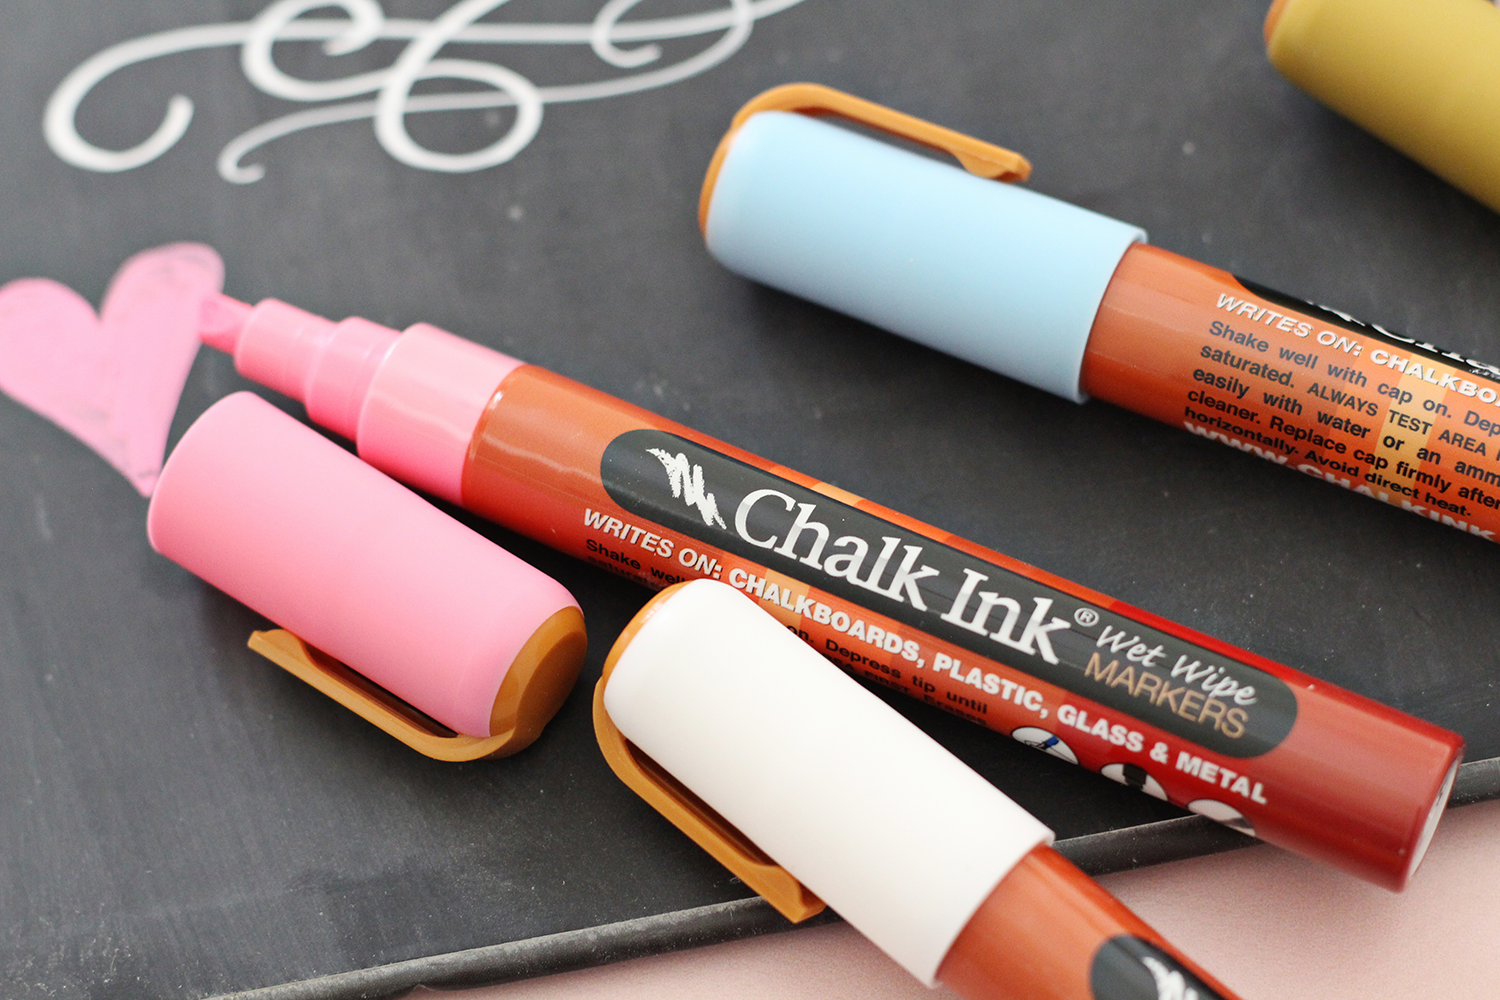 Chalk Ink Markers write on any non-porous surface